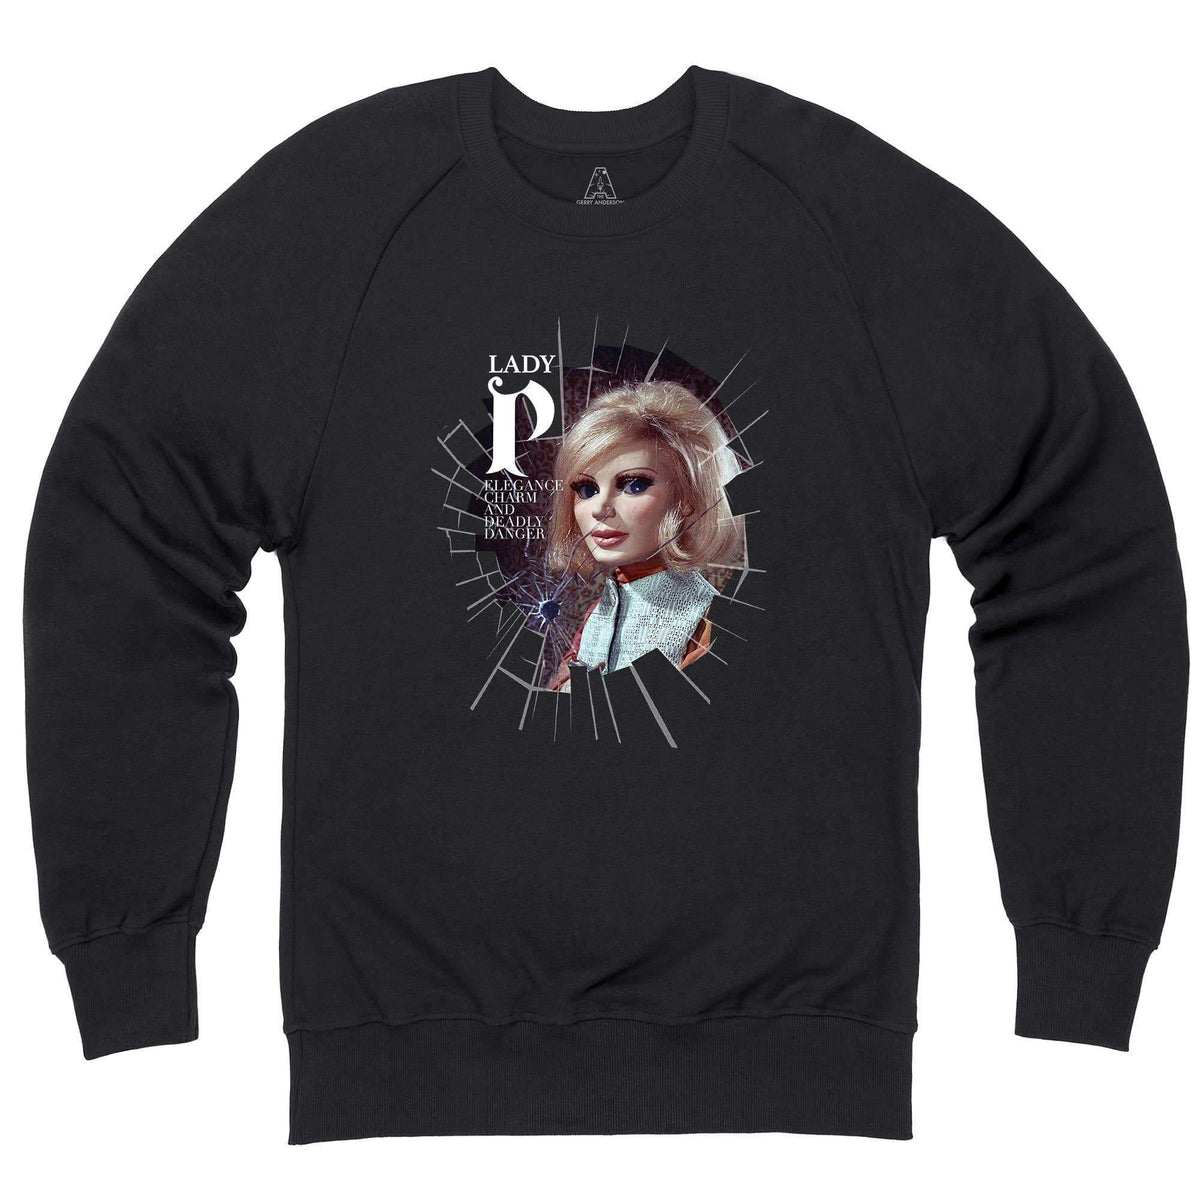 Lady Penelope - Elegance, Charm and Deadly Danger Sweatshirt [Official & Exclusive] - The Gerry Anderson Store